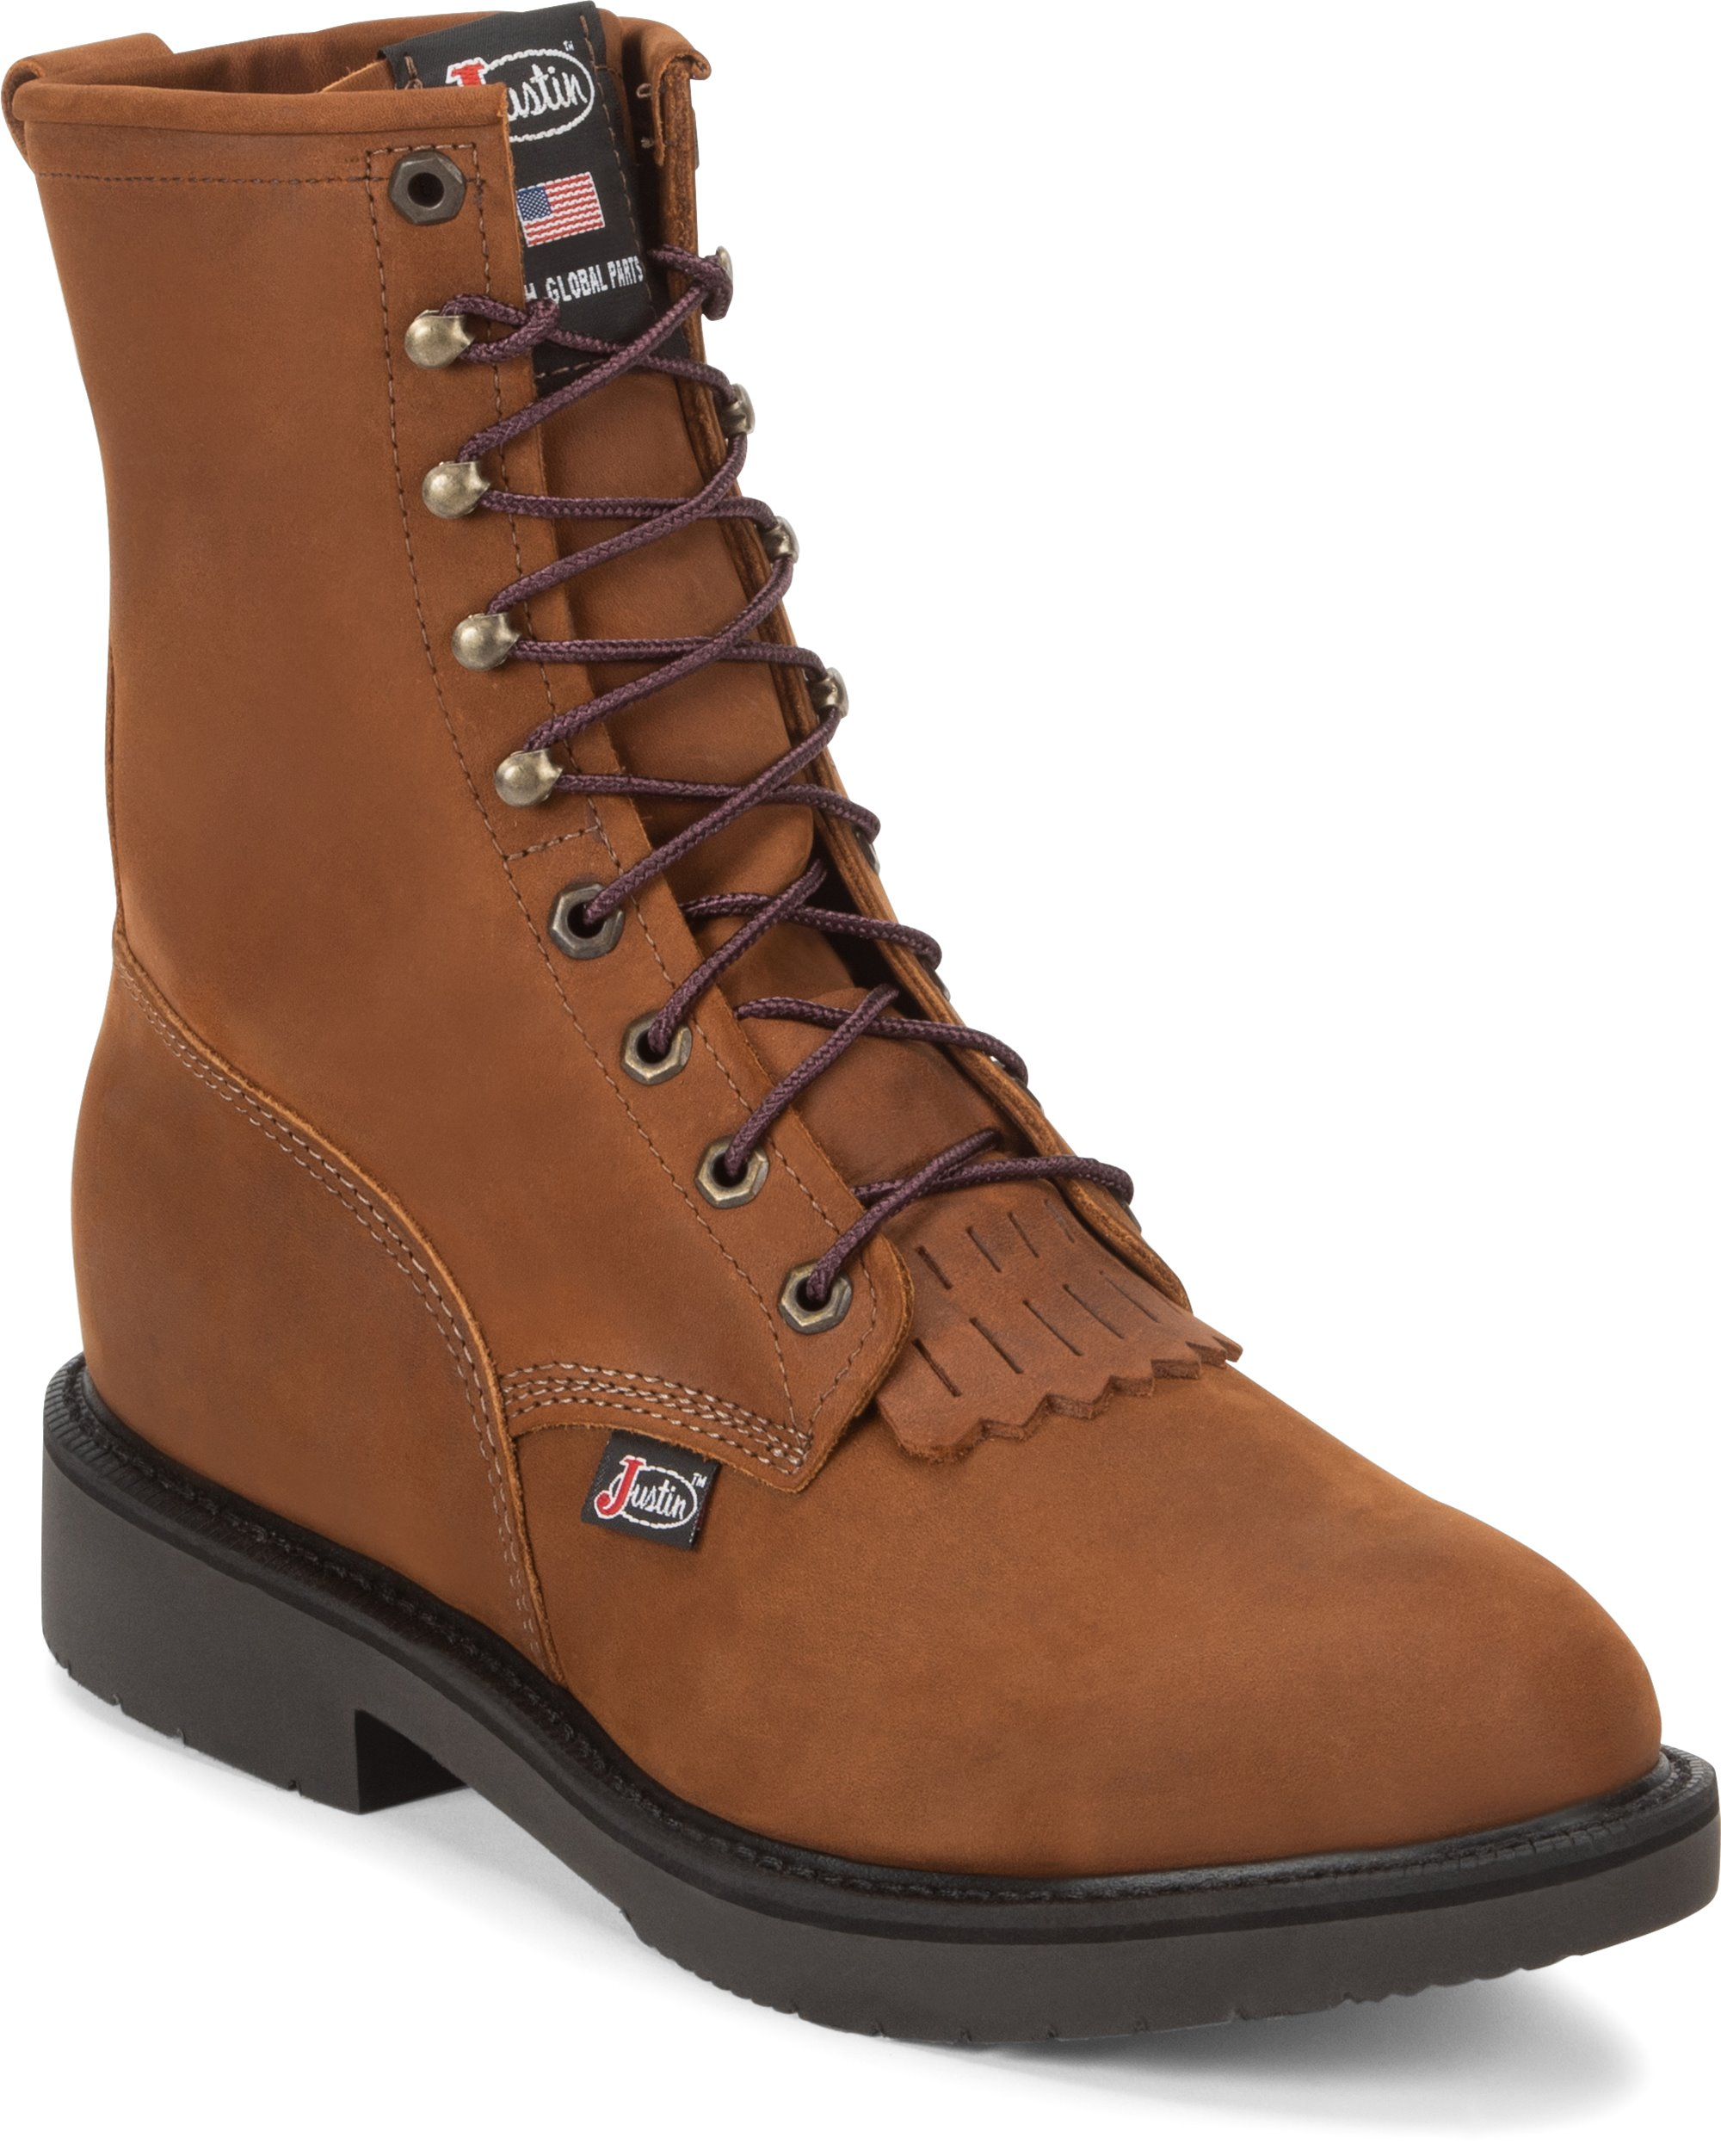 c06cc3f07a4 JUSTIN ORIGINAL WORKBOOTS #764 CONDUCTOR BROWN STEEL TOE 8